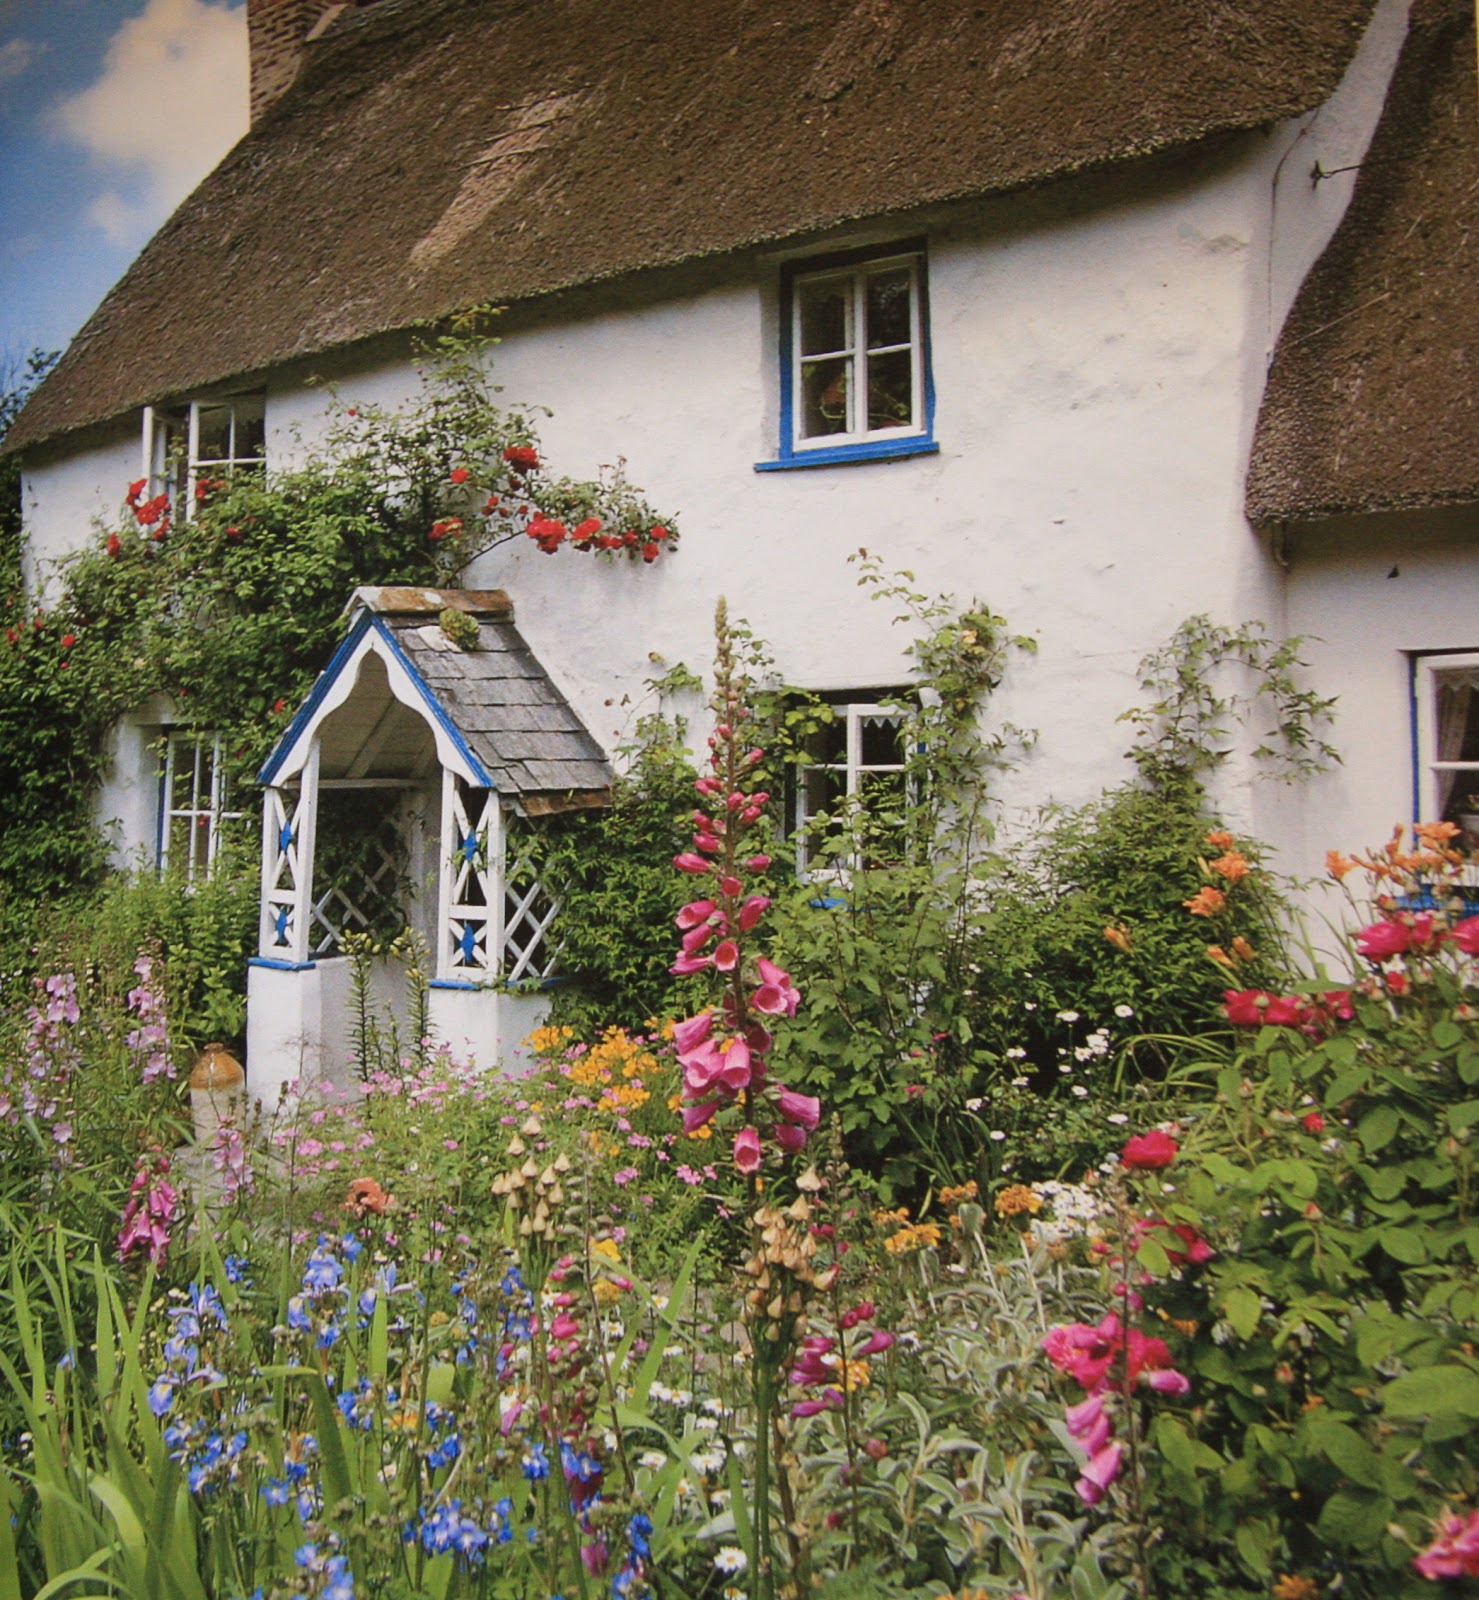 Lavender Cottage: The Charm Of Cottage Gardens